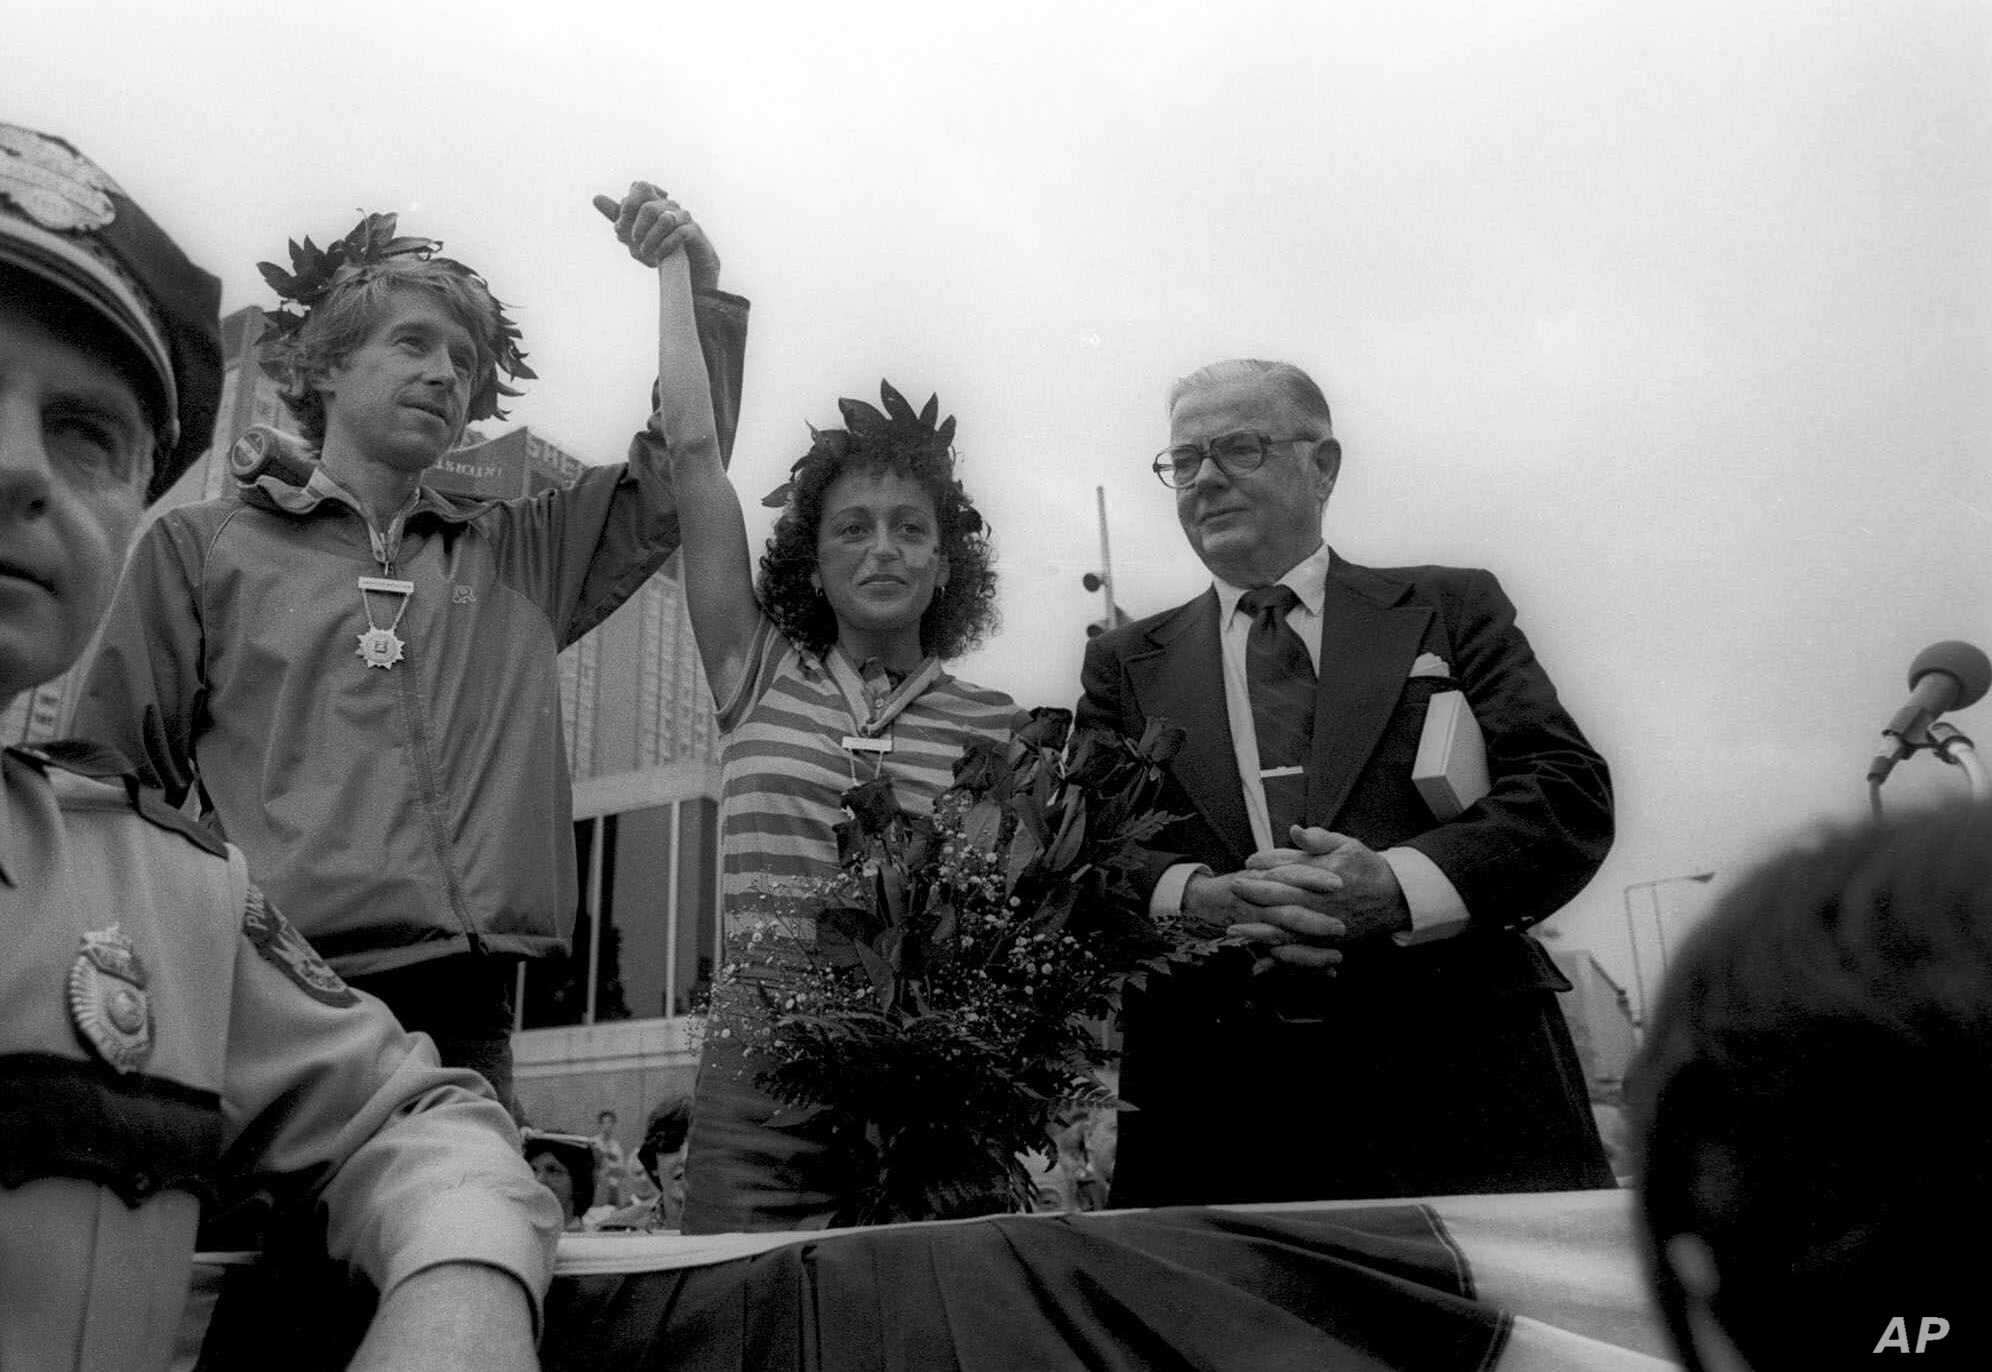 FILE - Jacqueline Gareau of Montreal has her hand held high by runner Bill Rodgers on May 14, 1980, in Boston, three weeks and two days after the Boston Marathon. Gareau had apparently finished second on the day of the race, but Rosie Ruiz, the first woman across the finish line, was disqualified.